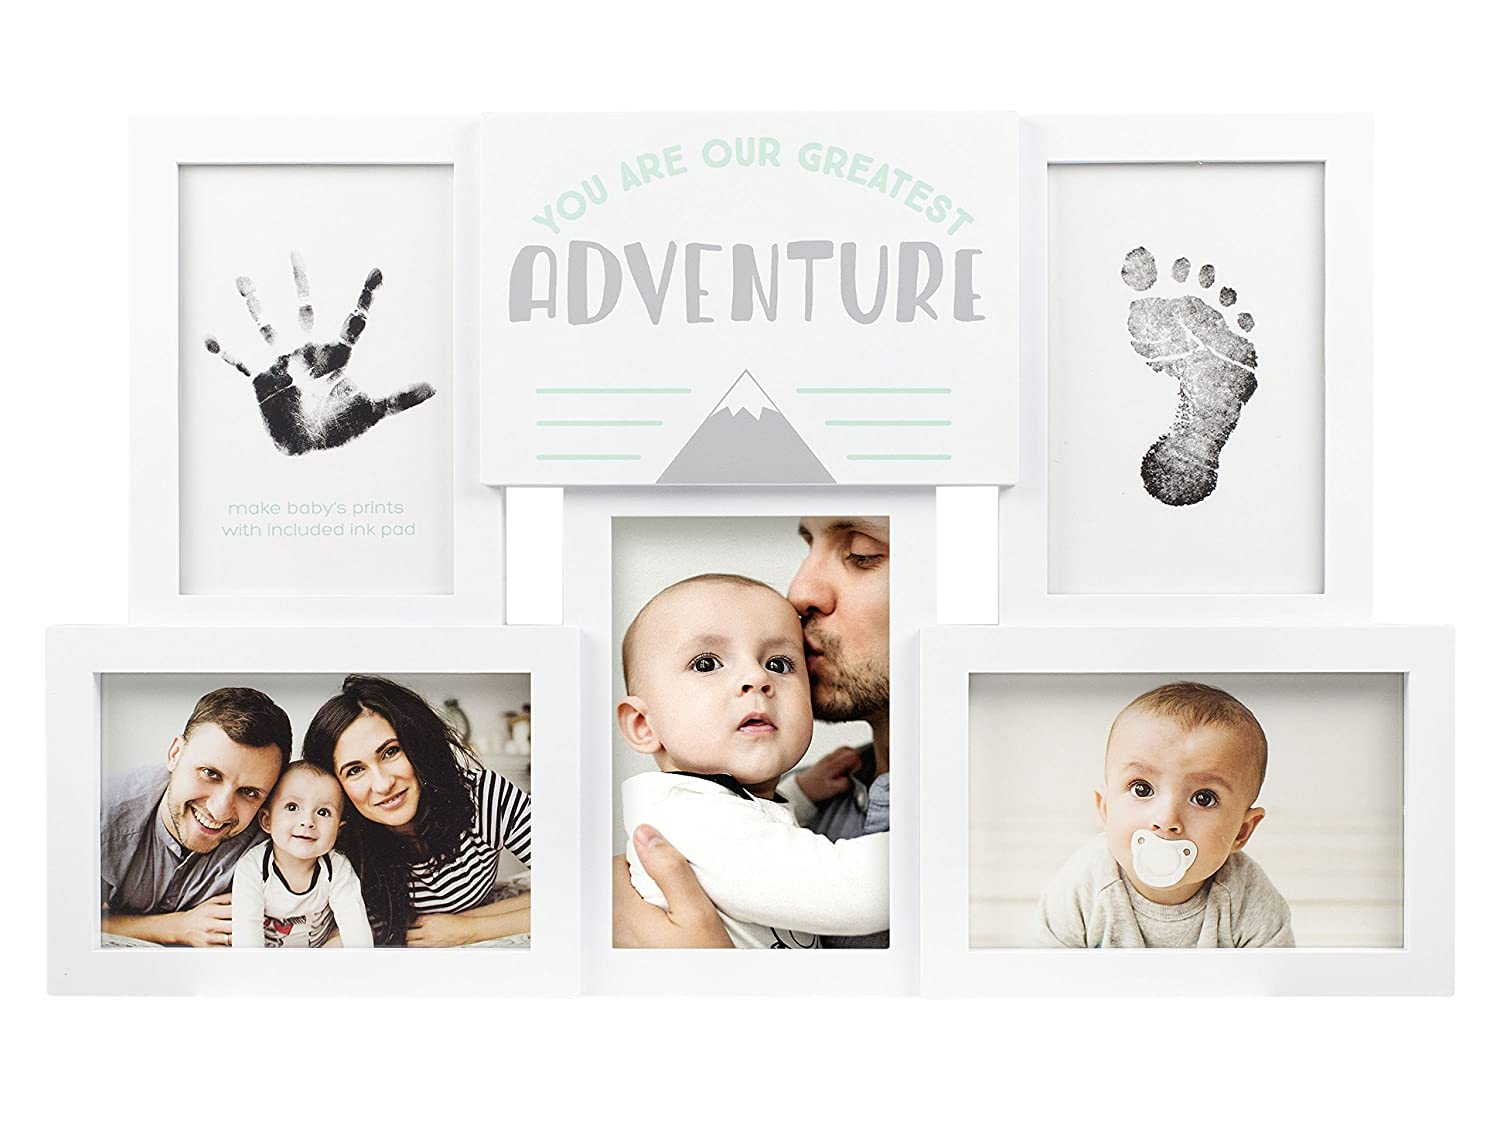 White//Blue Tiny Ideas Birthday Boy Collage Frame Keepsake with Included Inkpad for Babys Hand /& Foot Print